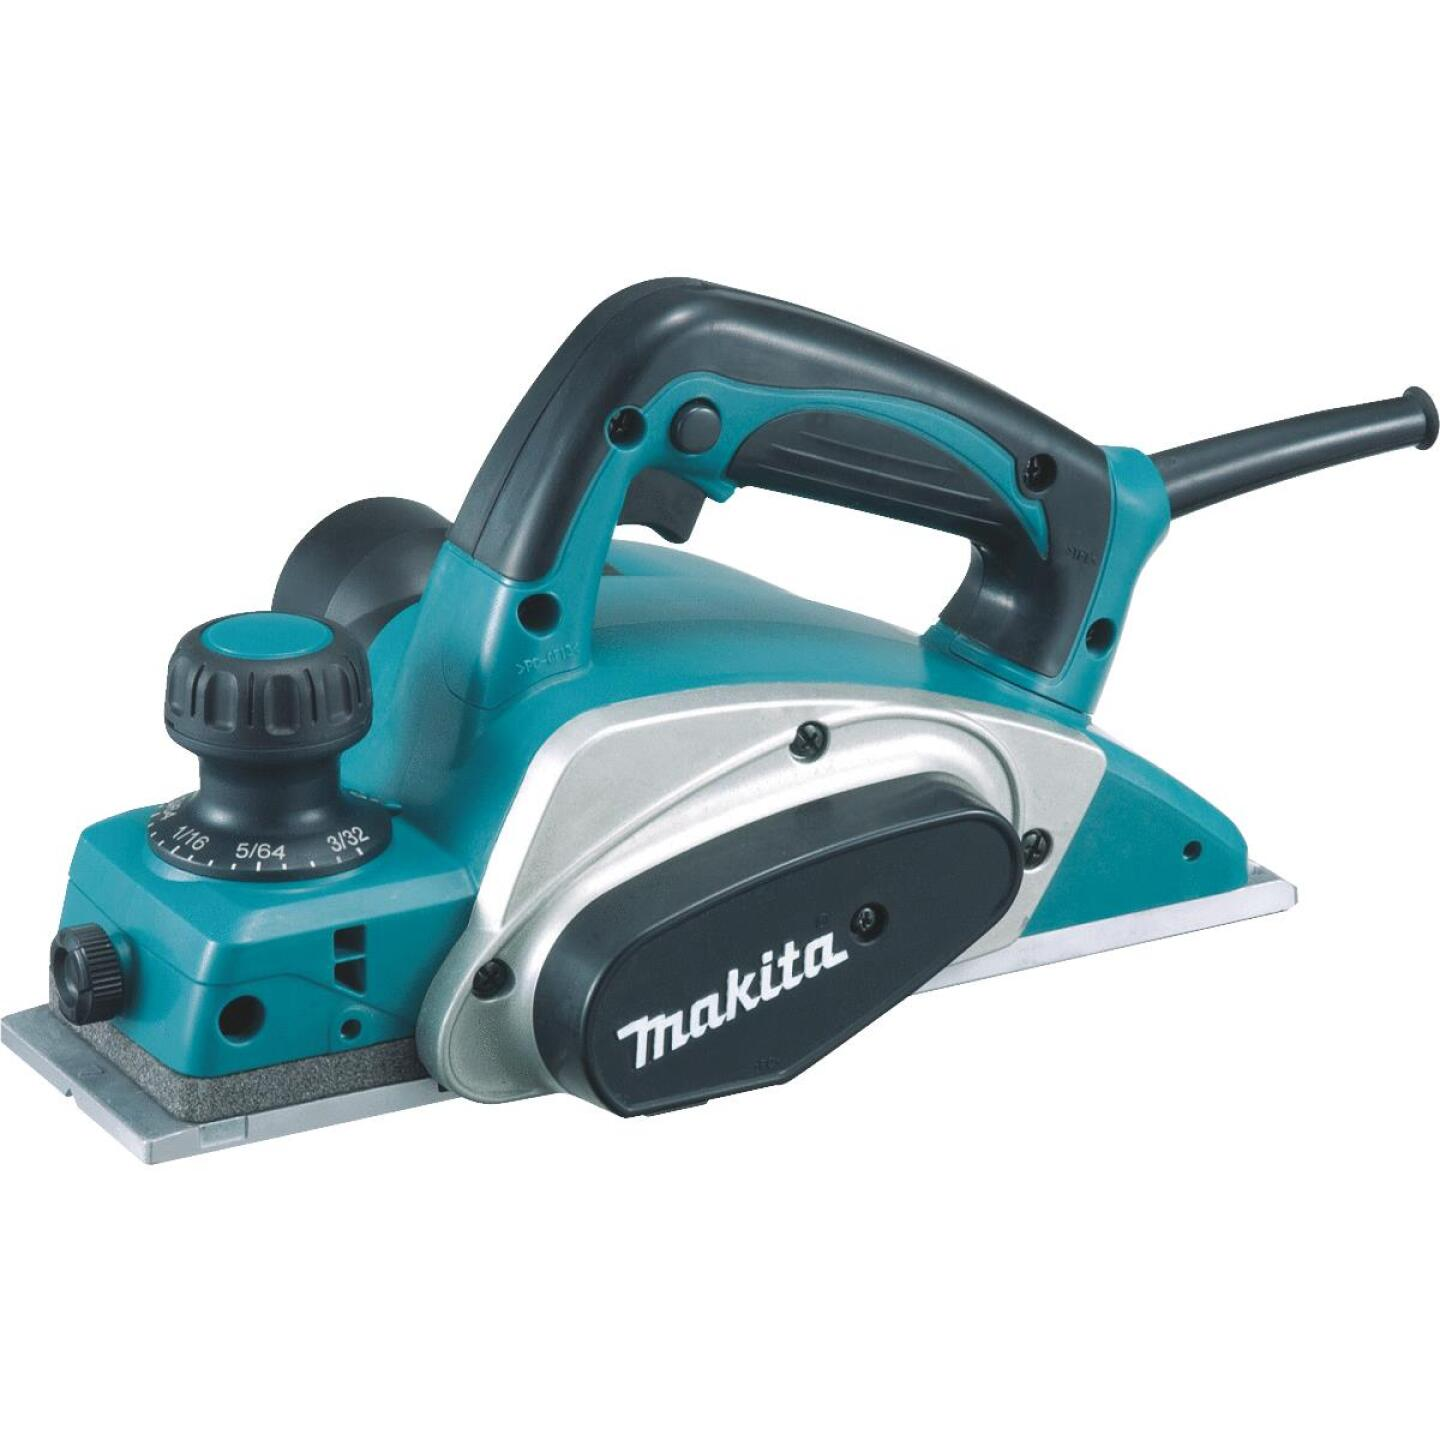 Makita 6.5A 3-1/4 In. 3/32 In. Planing Depth Planer Image 1